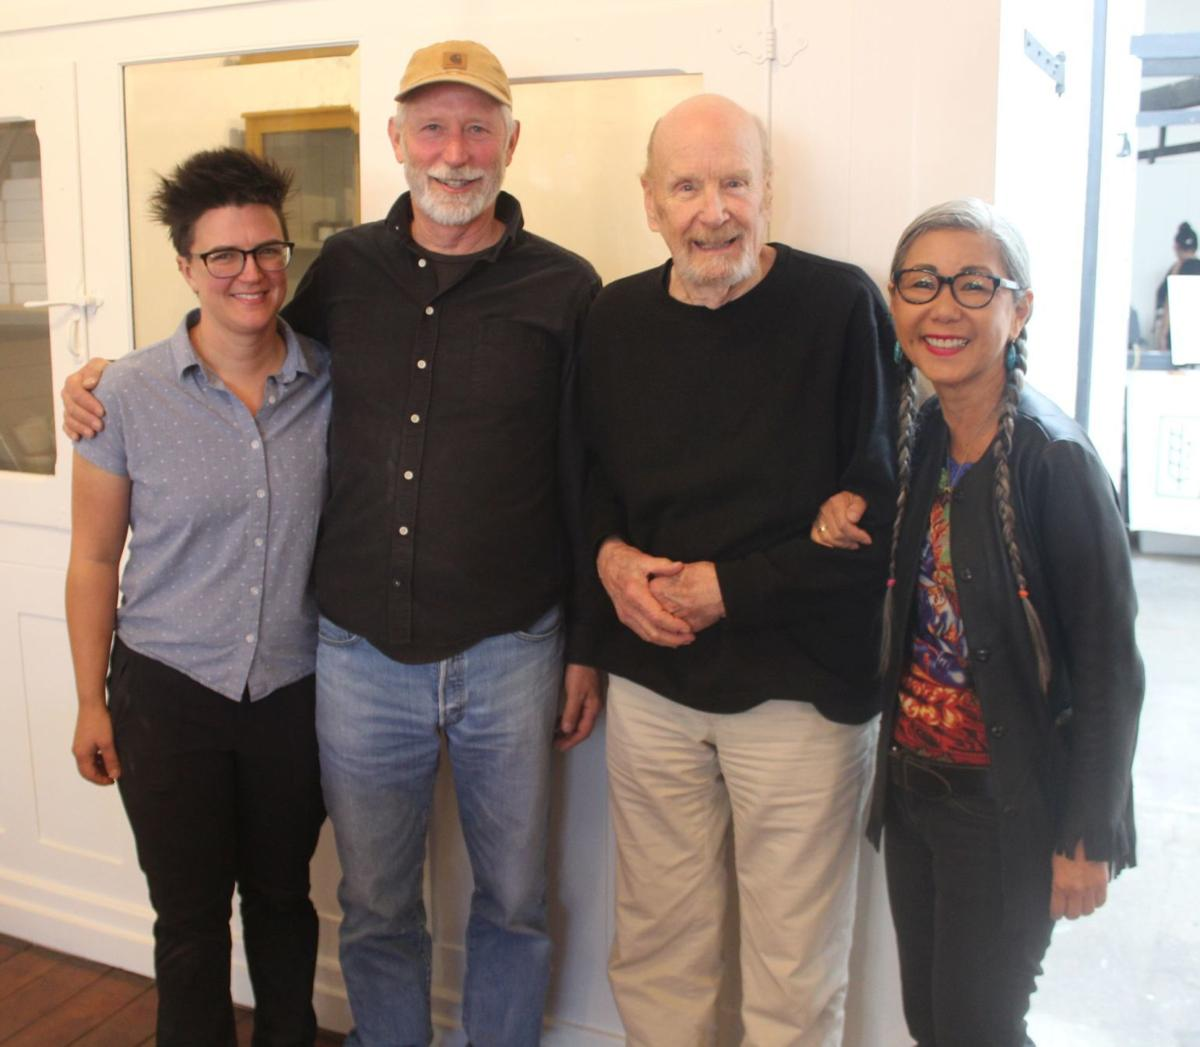 Chelsea Radcliffe, Richard Carter, Richard Larson, Susan Kim